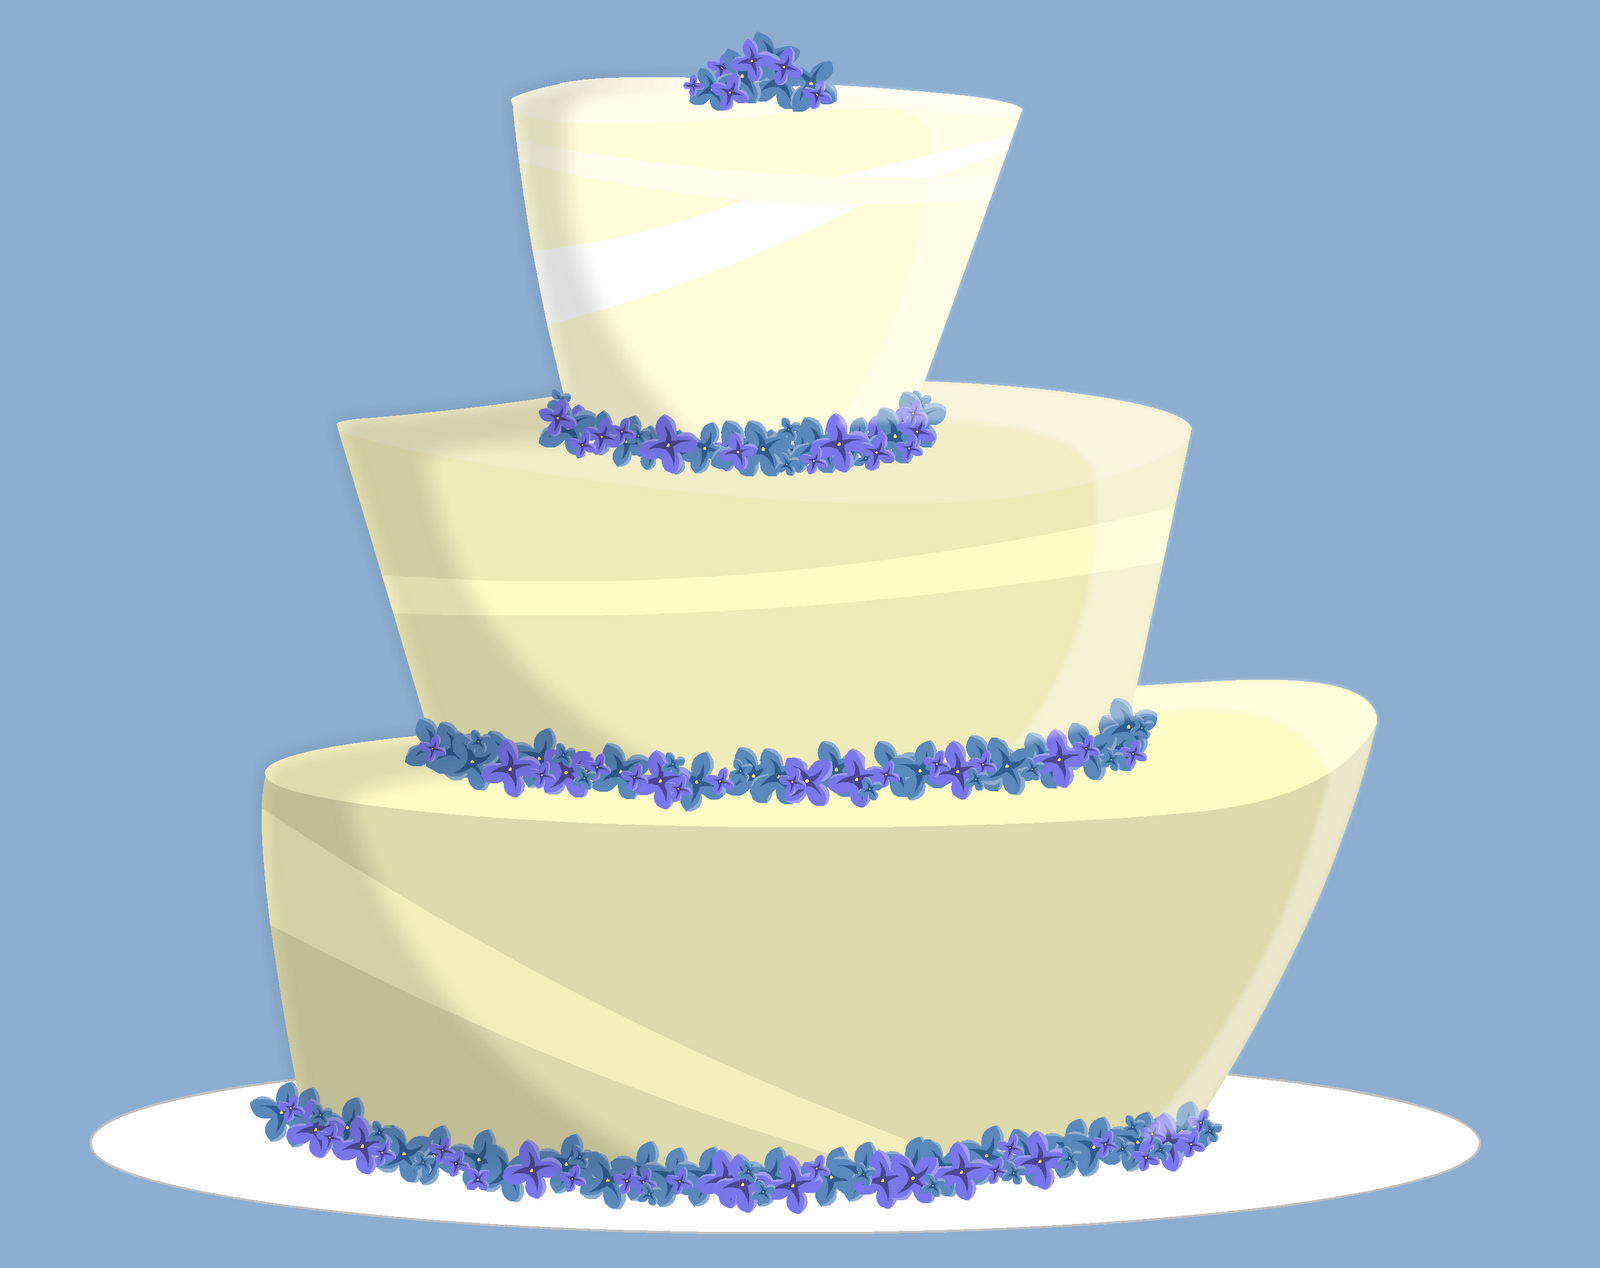 Seven Blue Orchids: Drawing a Day: Hydrangea Cake